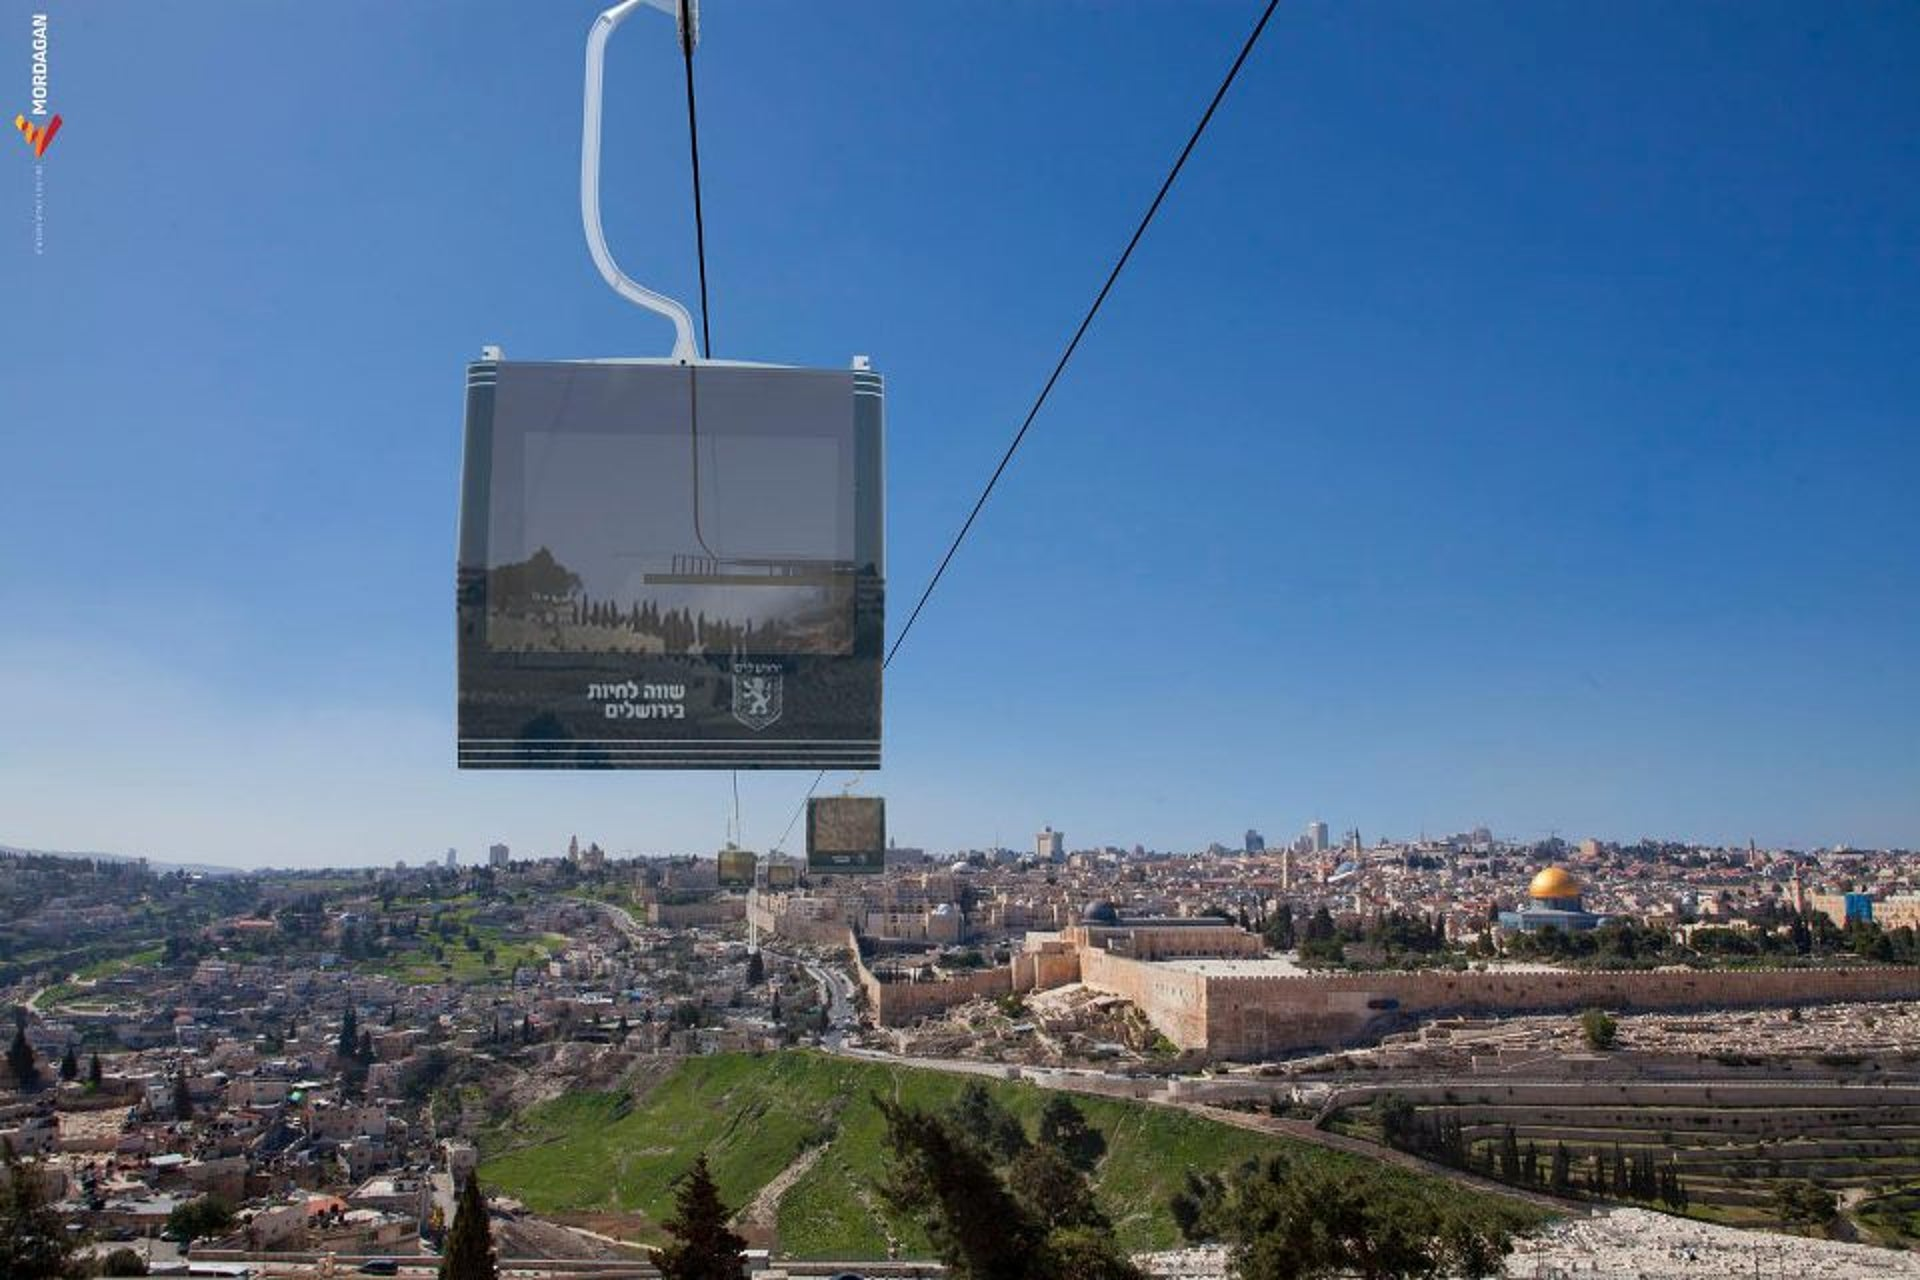 An artist's rendition of the planned cableway over Jerusalem.